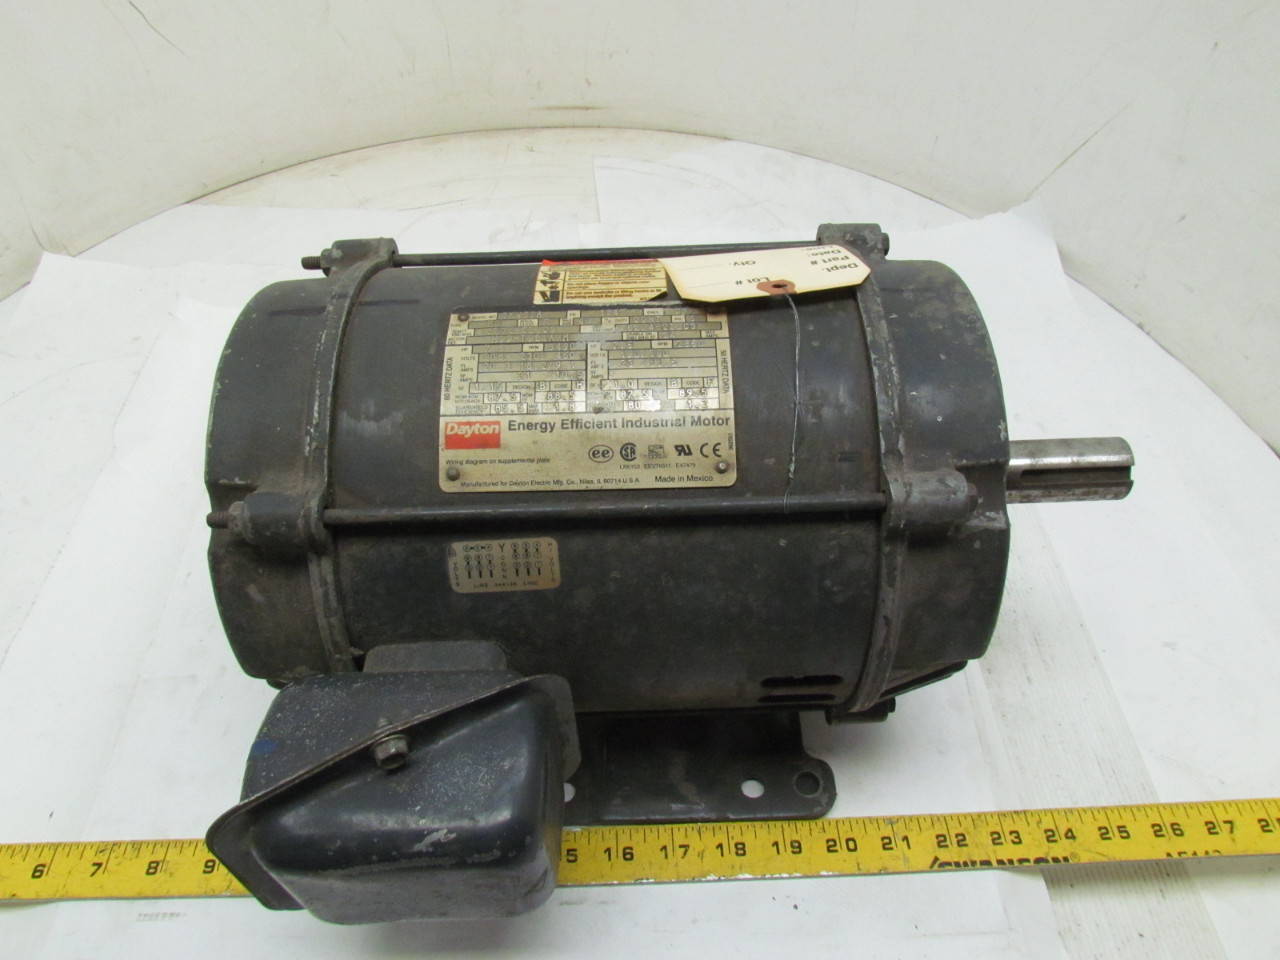 Dayton 3kw39a 3ph electric motor 7 5hp 3490 2850 rpm 208 for 5hp 3ph electric motor